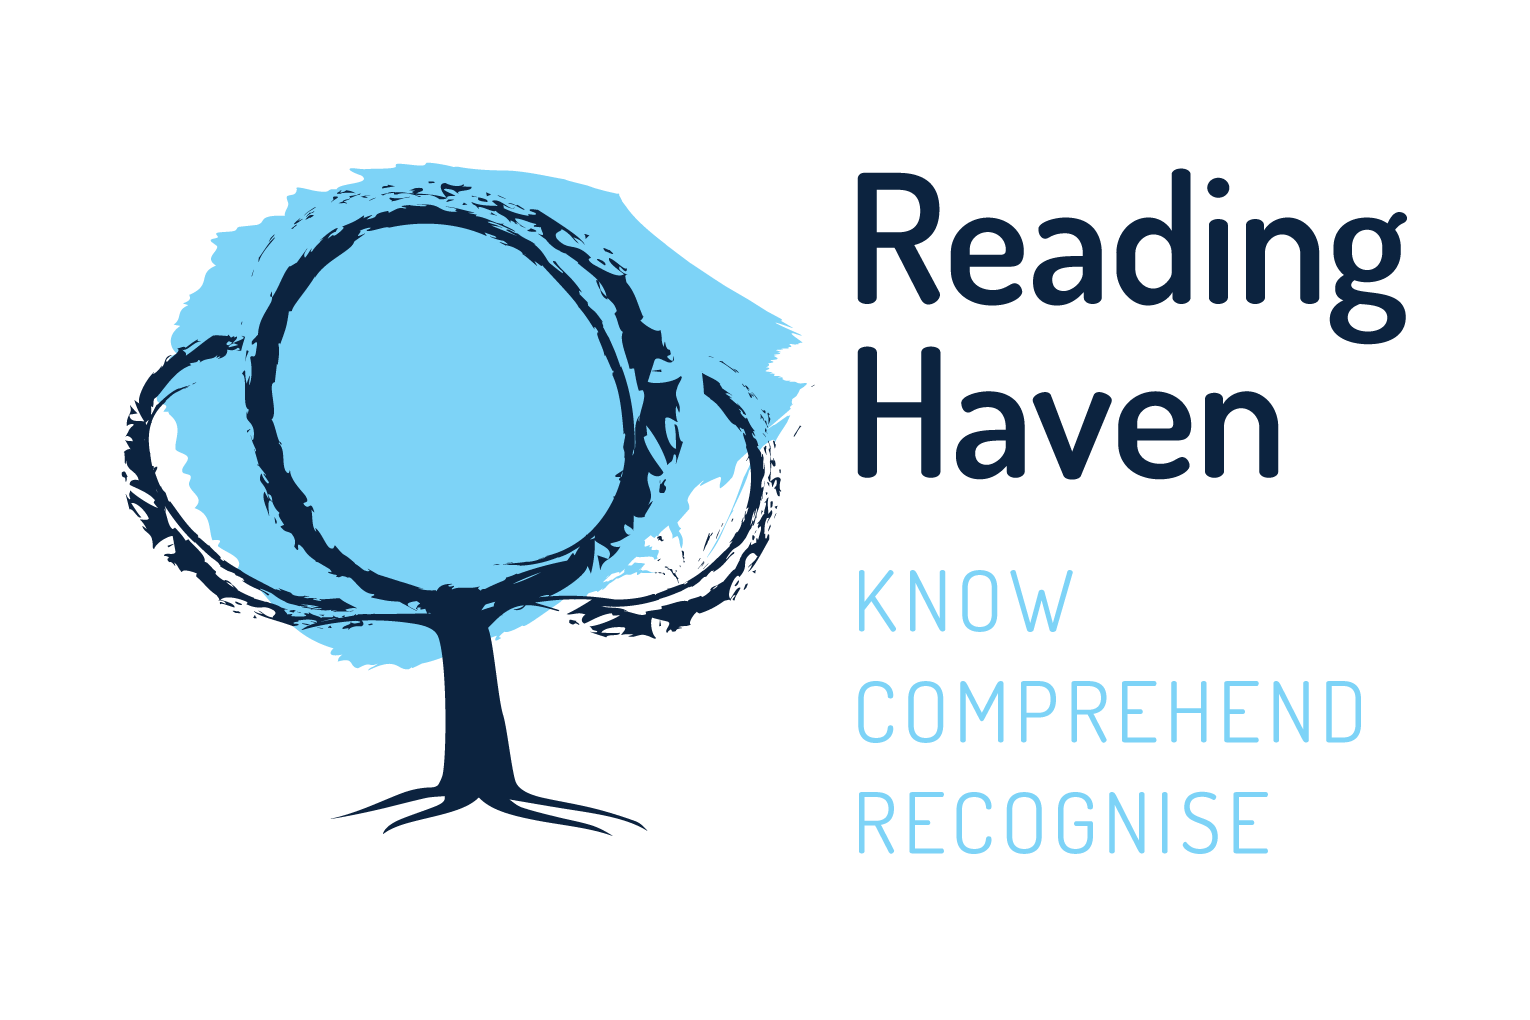 reading haven logo